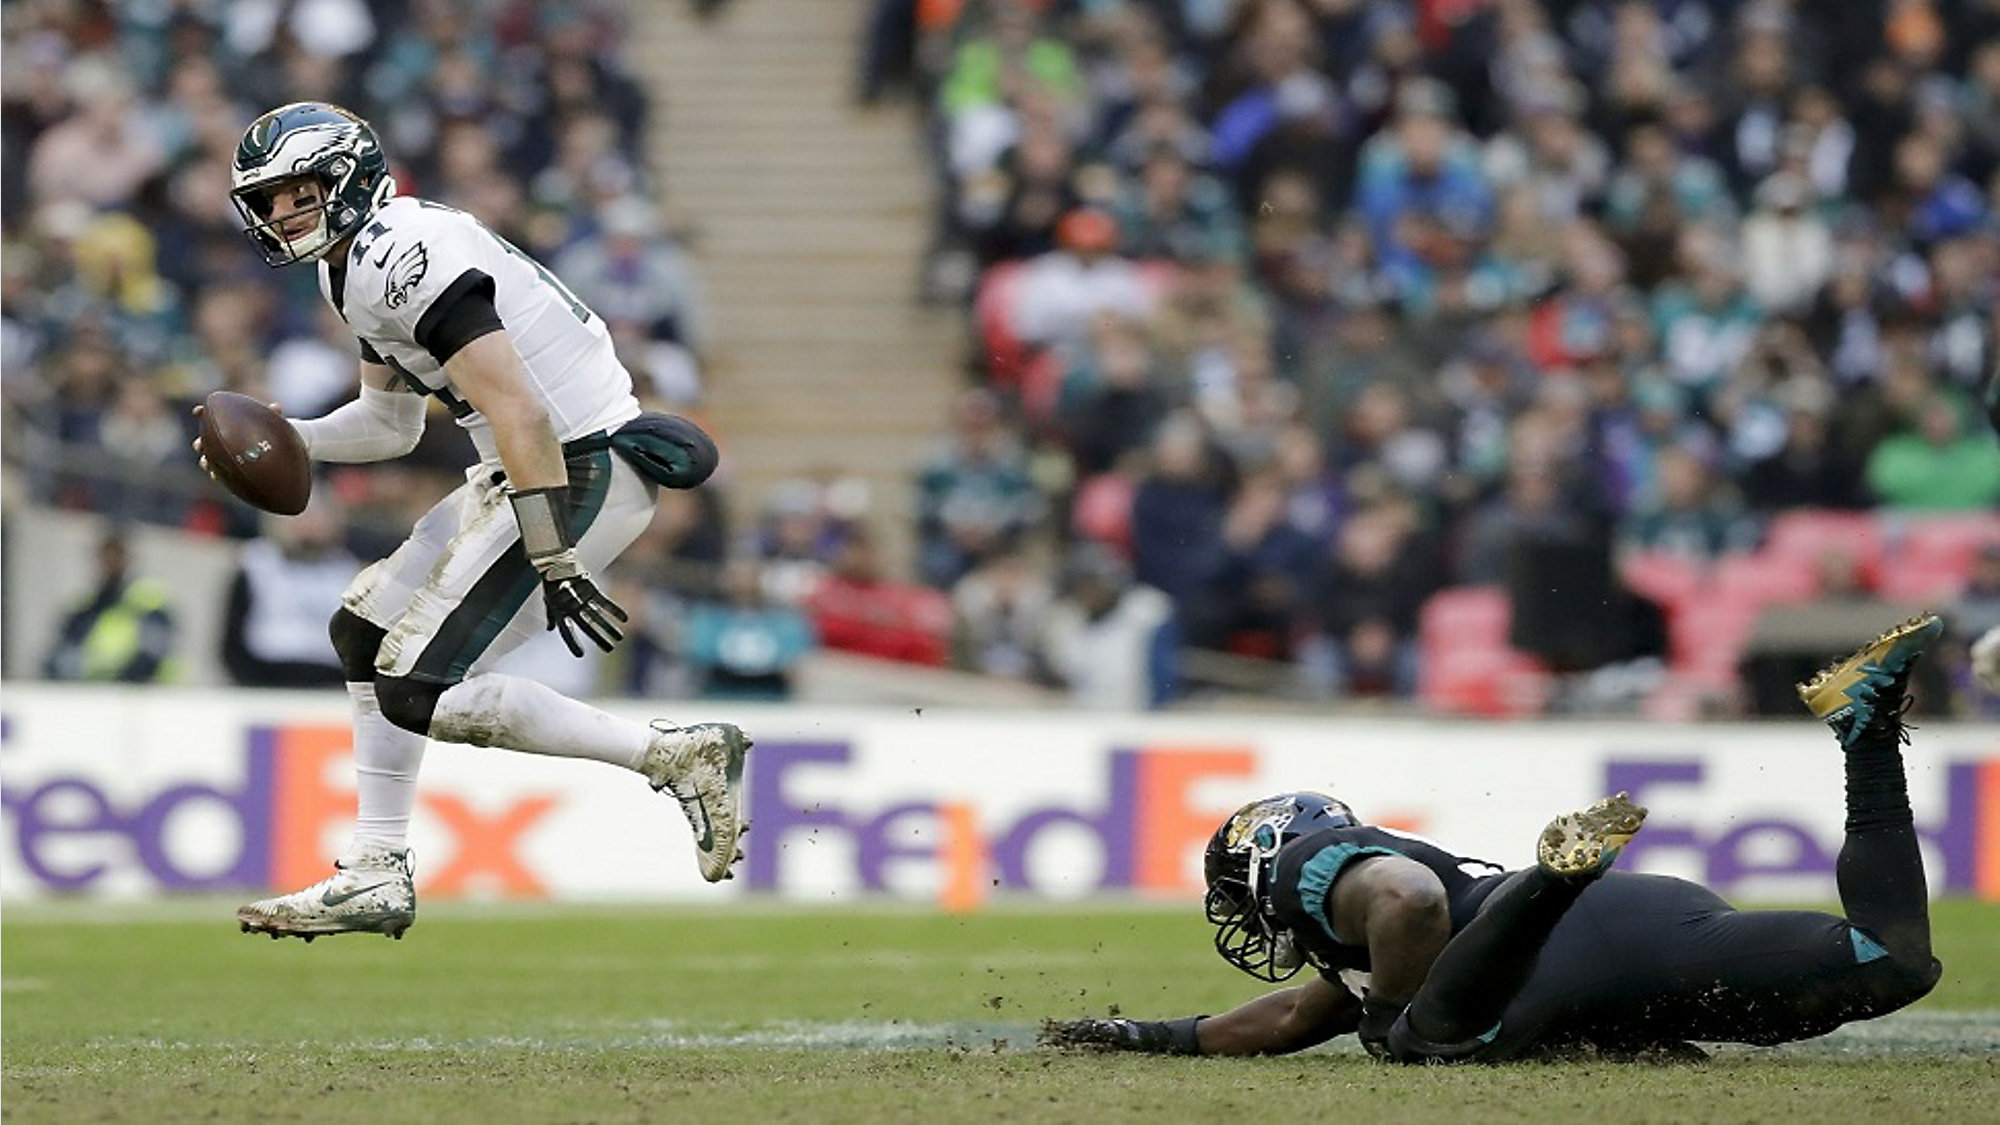 899e6ec1077 Philadelphia Eagles quarterback Carson Wentz (11) skips out of an attempted  tackle in the